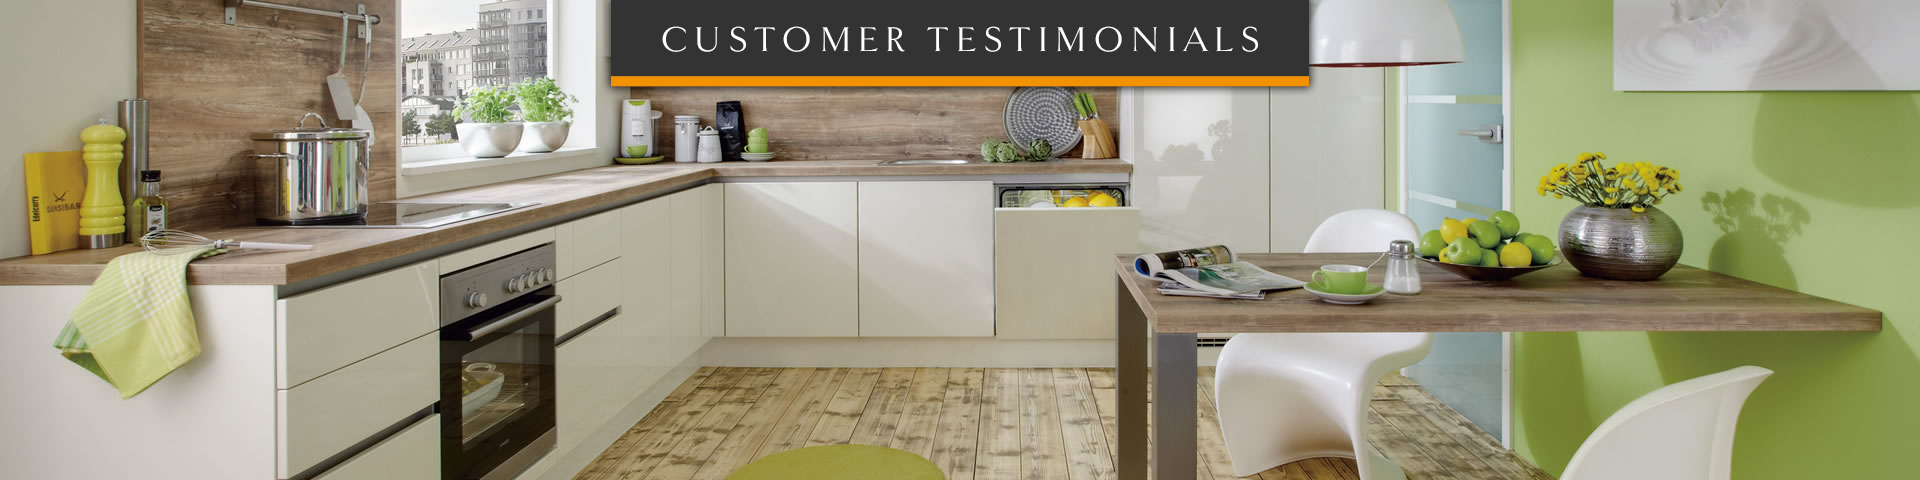 Kitchens Lanarkshire Reviews